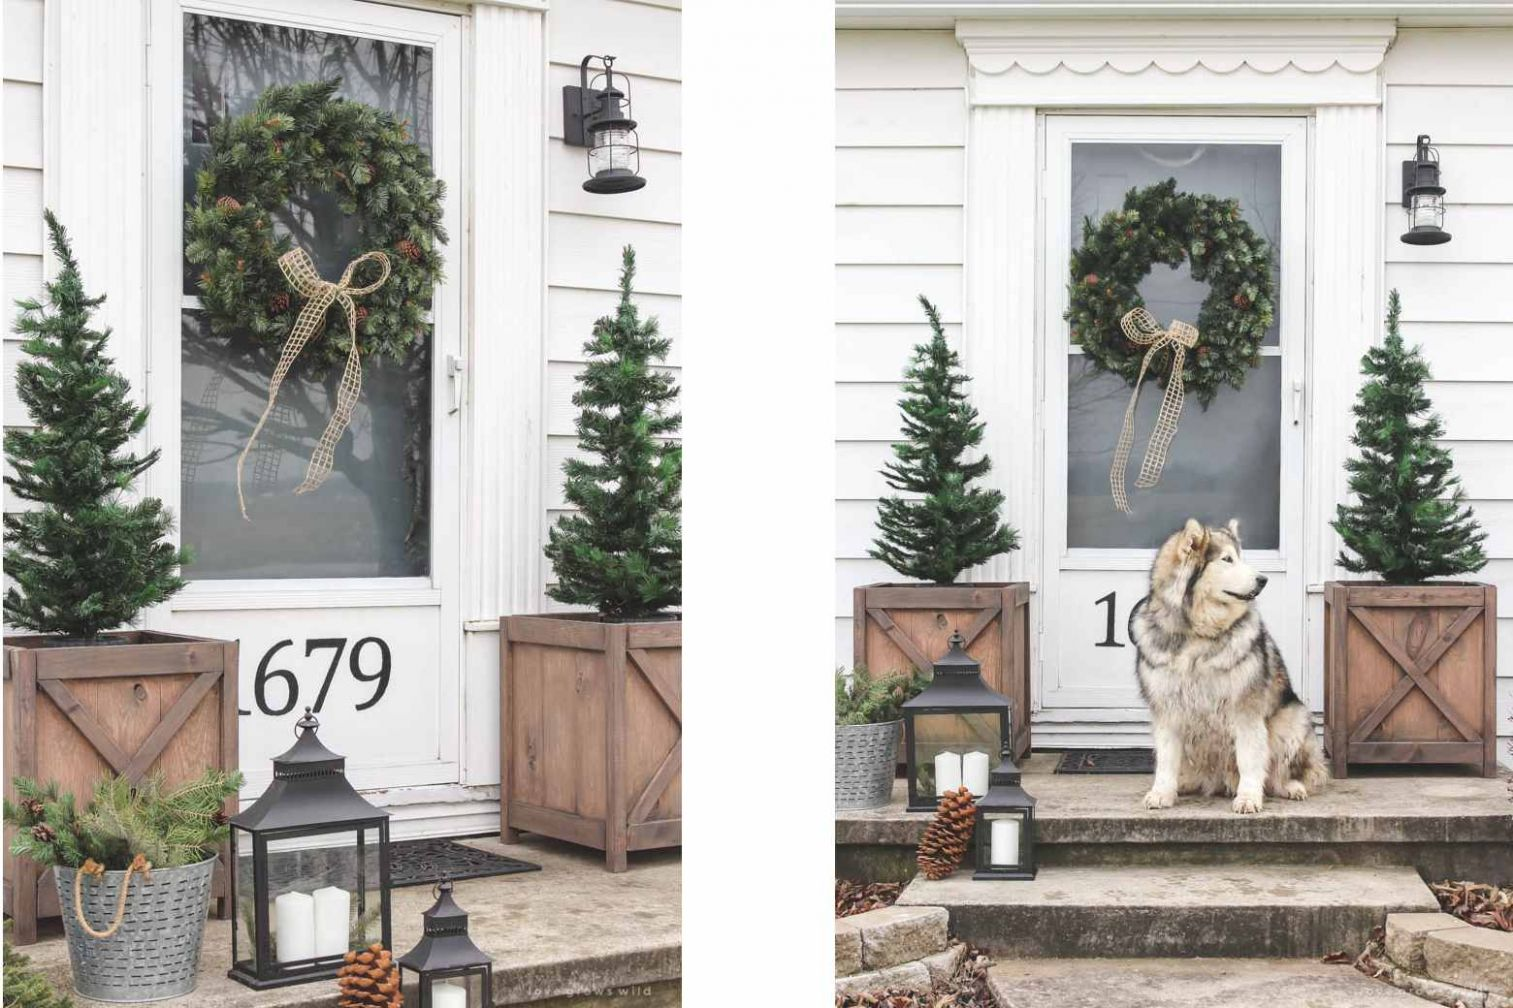 12 Best Winter Porch Decorating Ideas - front porch decor winter